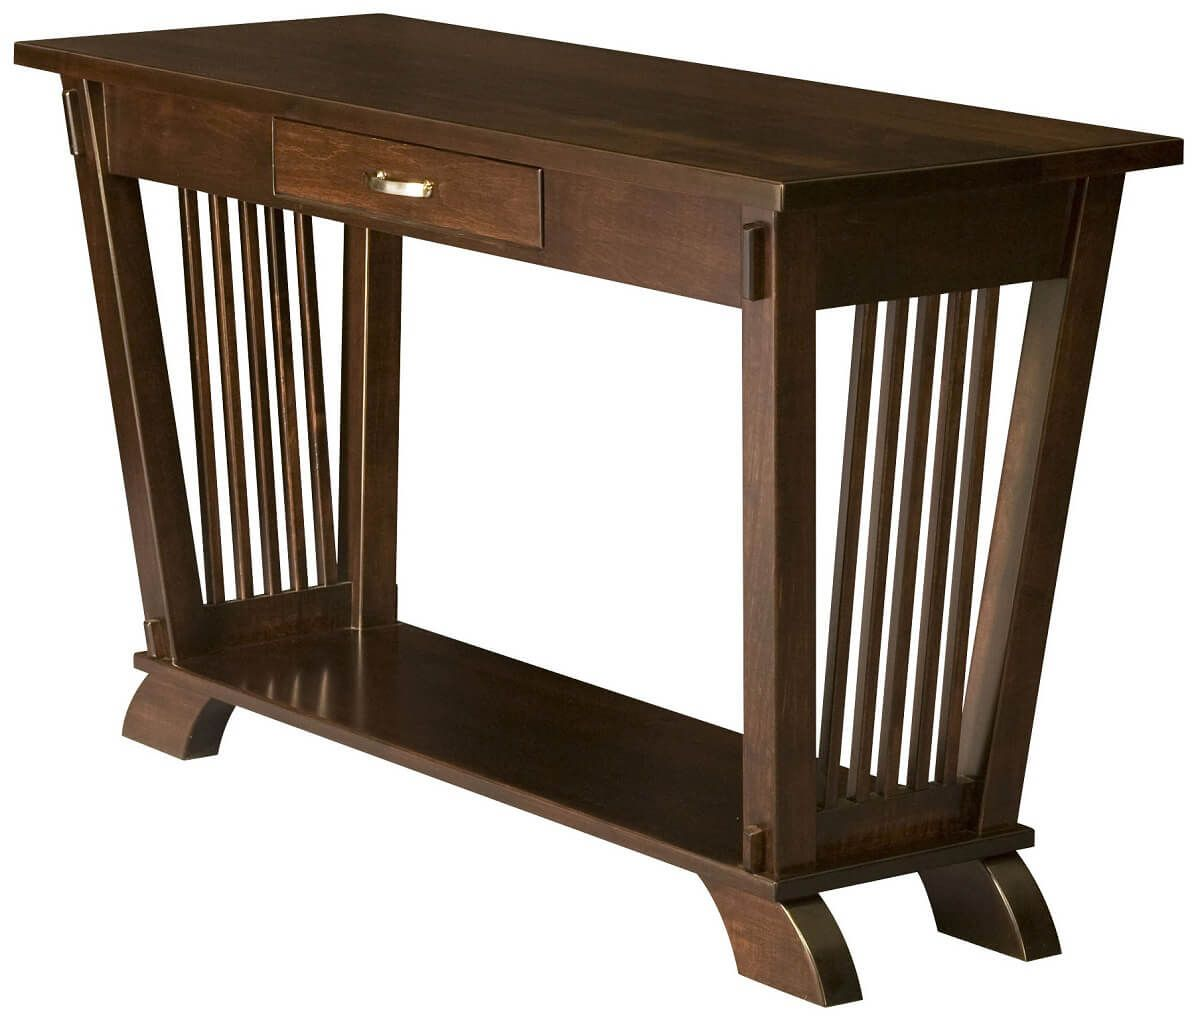 Torrington Console Table in Brown Maple